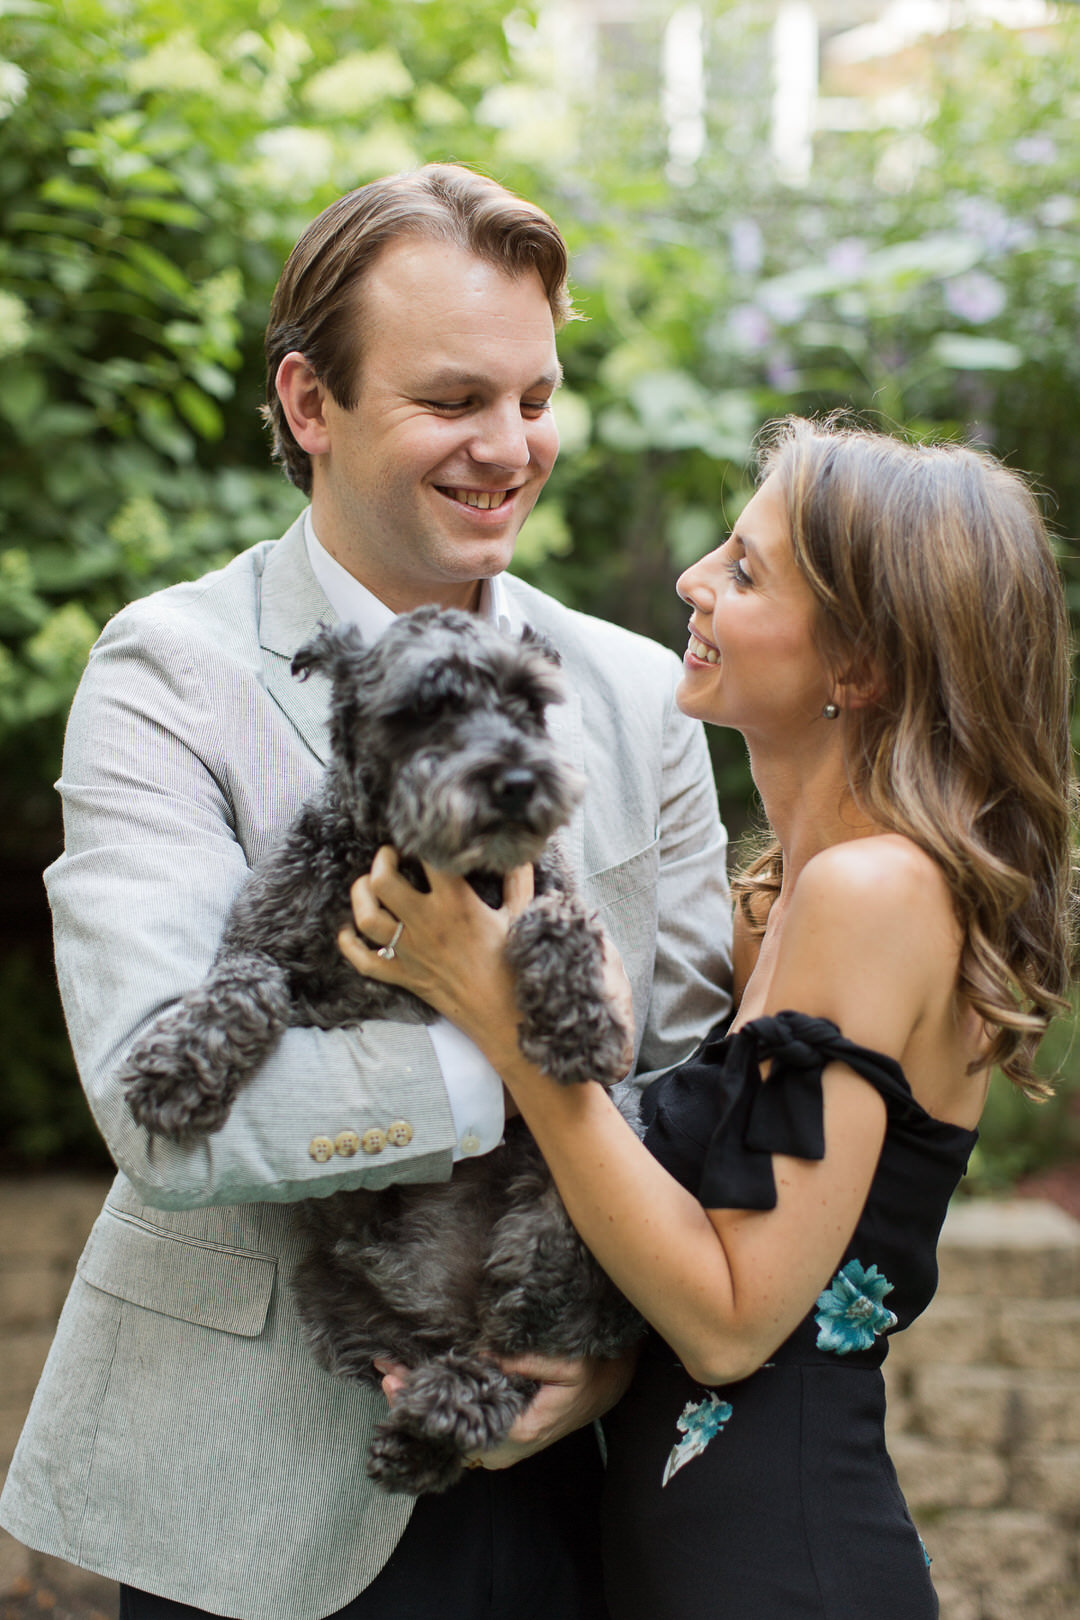 Melissa Kruse Photography - Meghan & Pete Engagement Photos-28.jpg